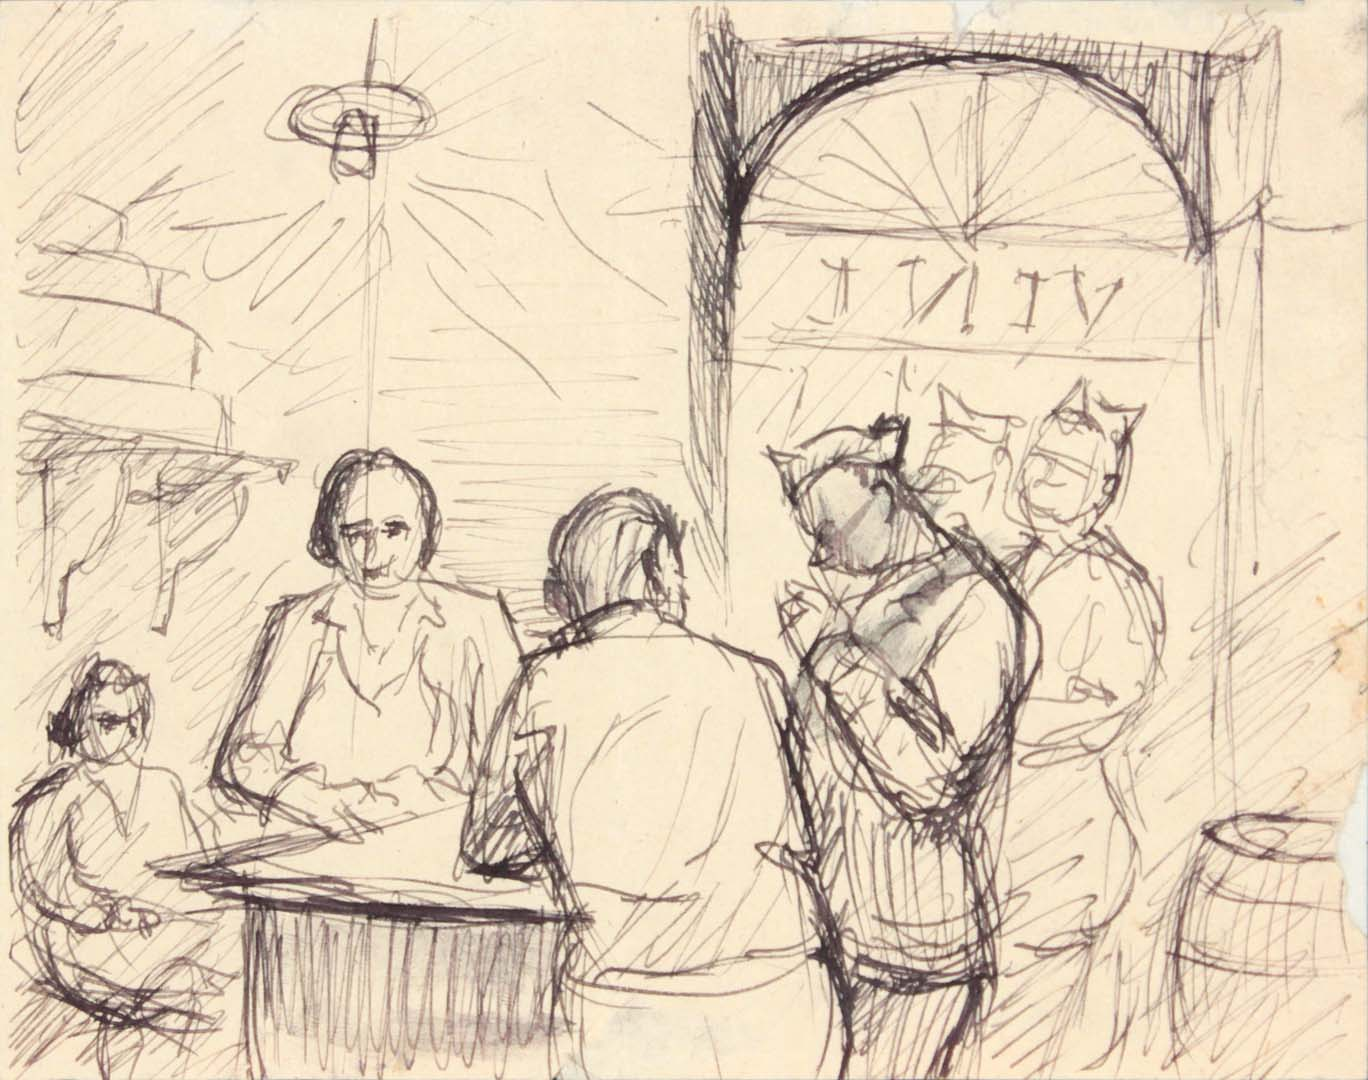 1944 Caserta Italy II Pen and Ink on Paper 4.75 x 6